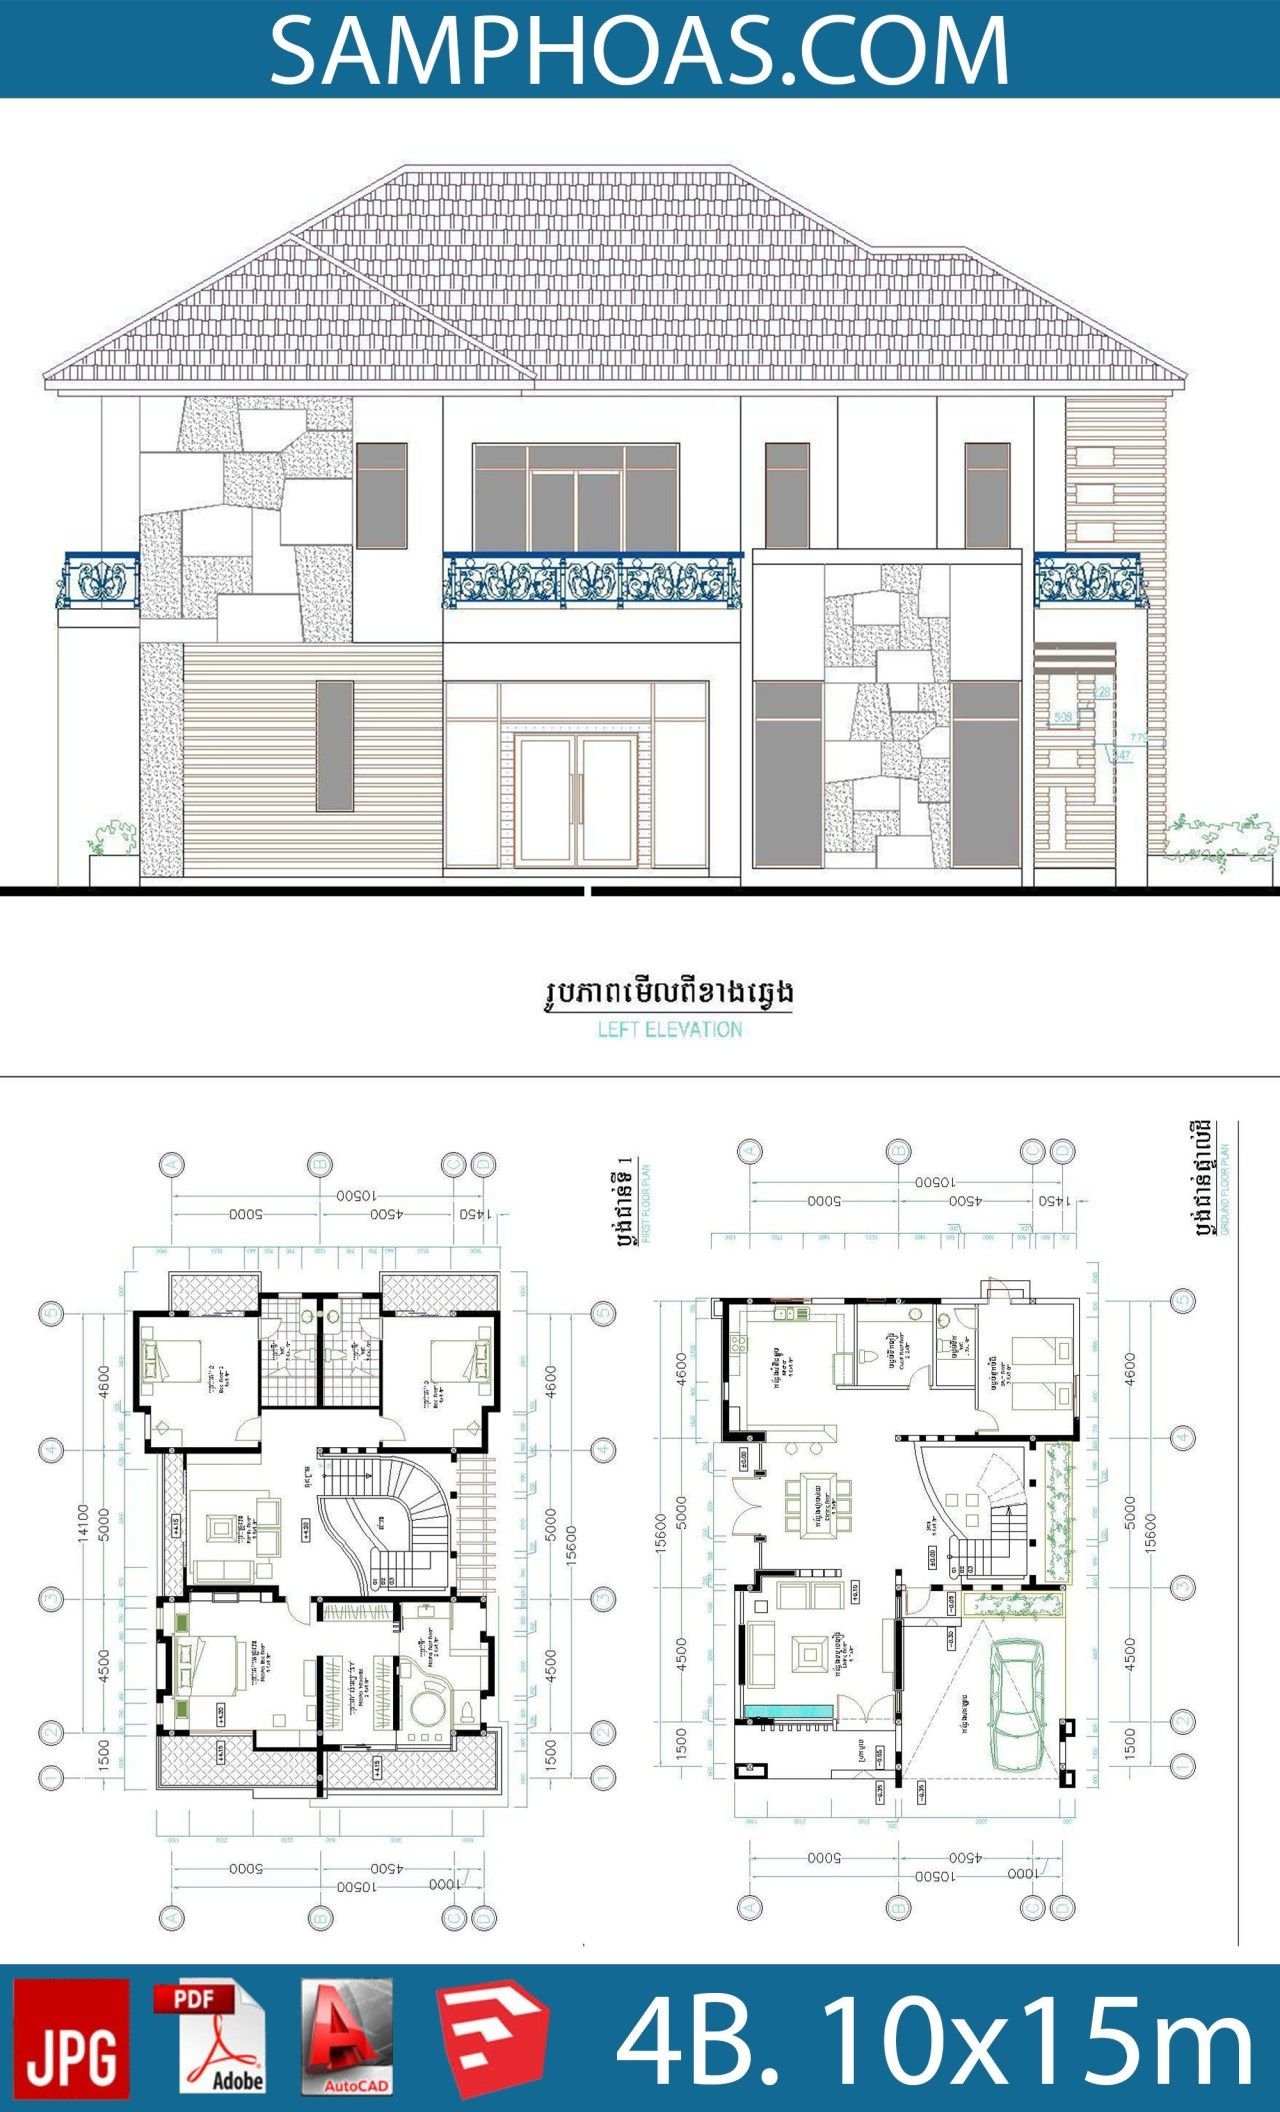 4 Bedroom Home Plan Full Exterior And Interior 10x15 6m Samphoas Plan House Plans Unique House Plans Duplex House Design